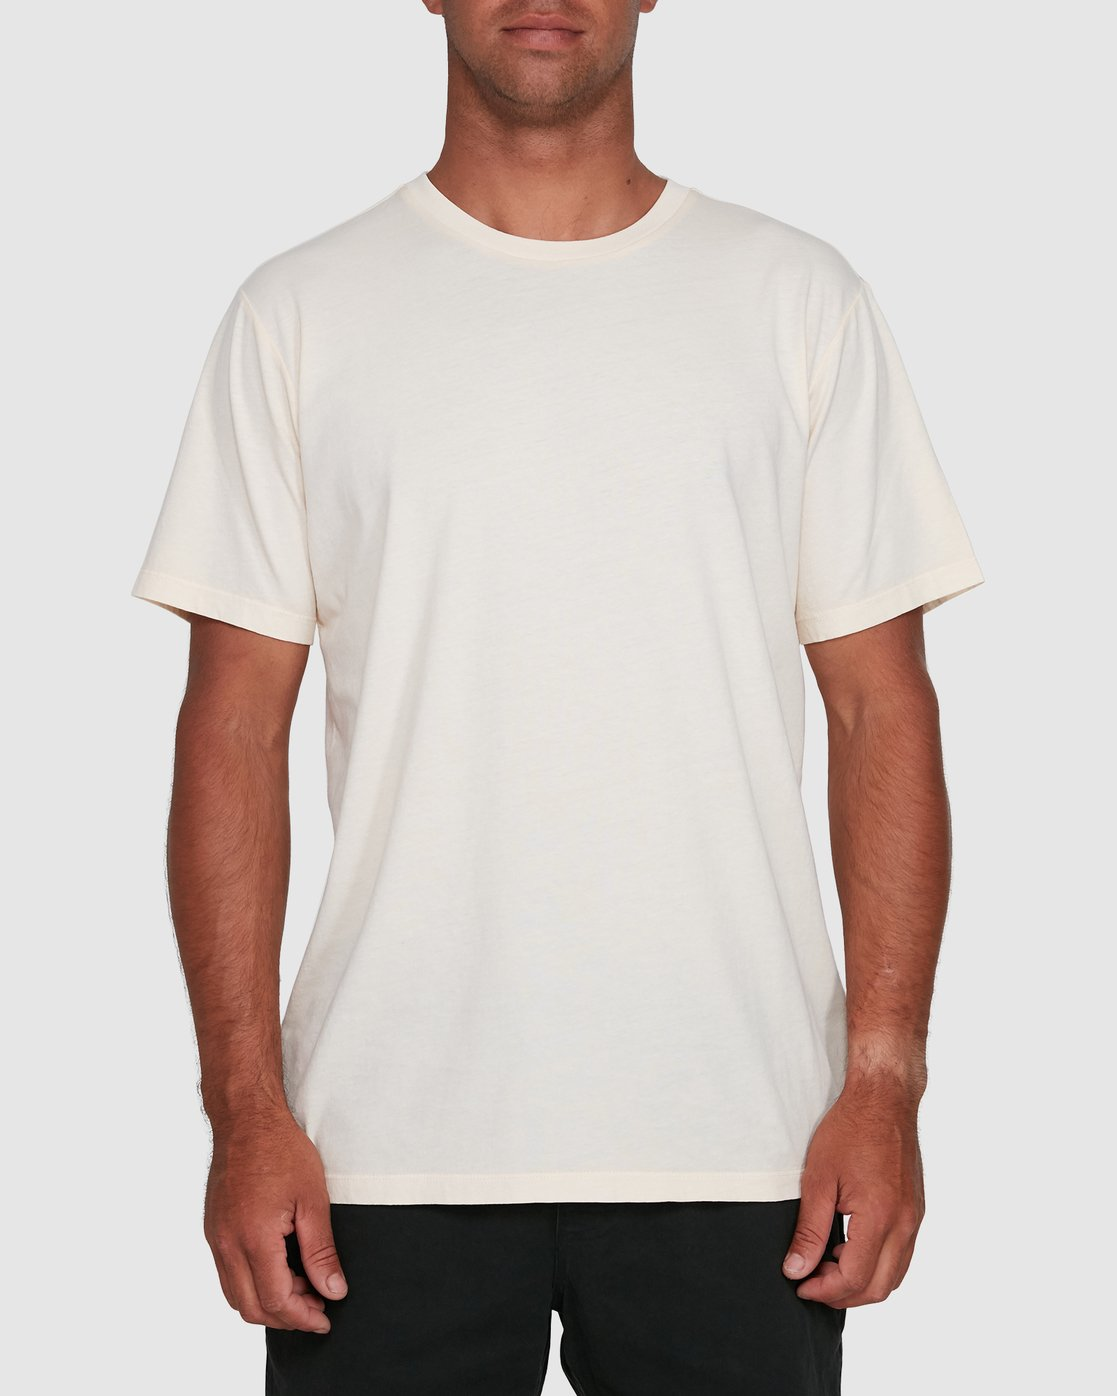 5 Rvca Washed Short Sleeve Tee White R105050 RVCA